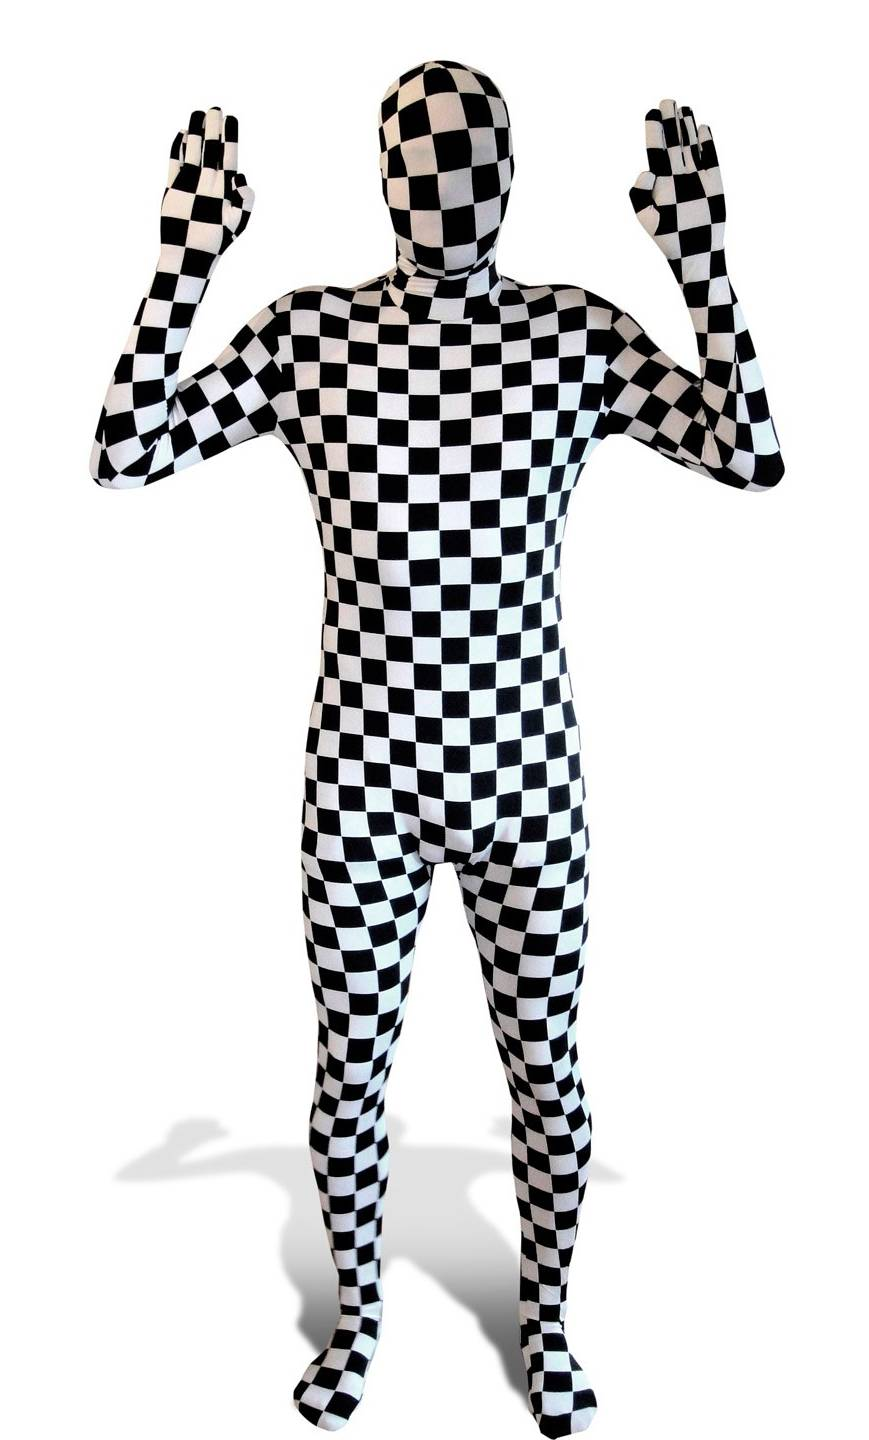 costume morphsuit damier v19660. Black Bedroom Furniture Sets. Home Design Ideas